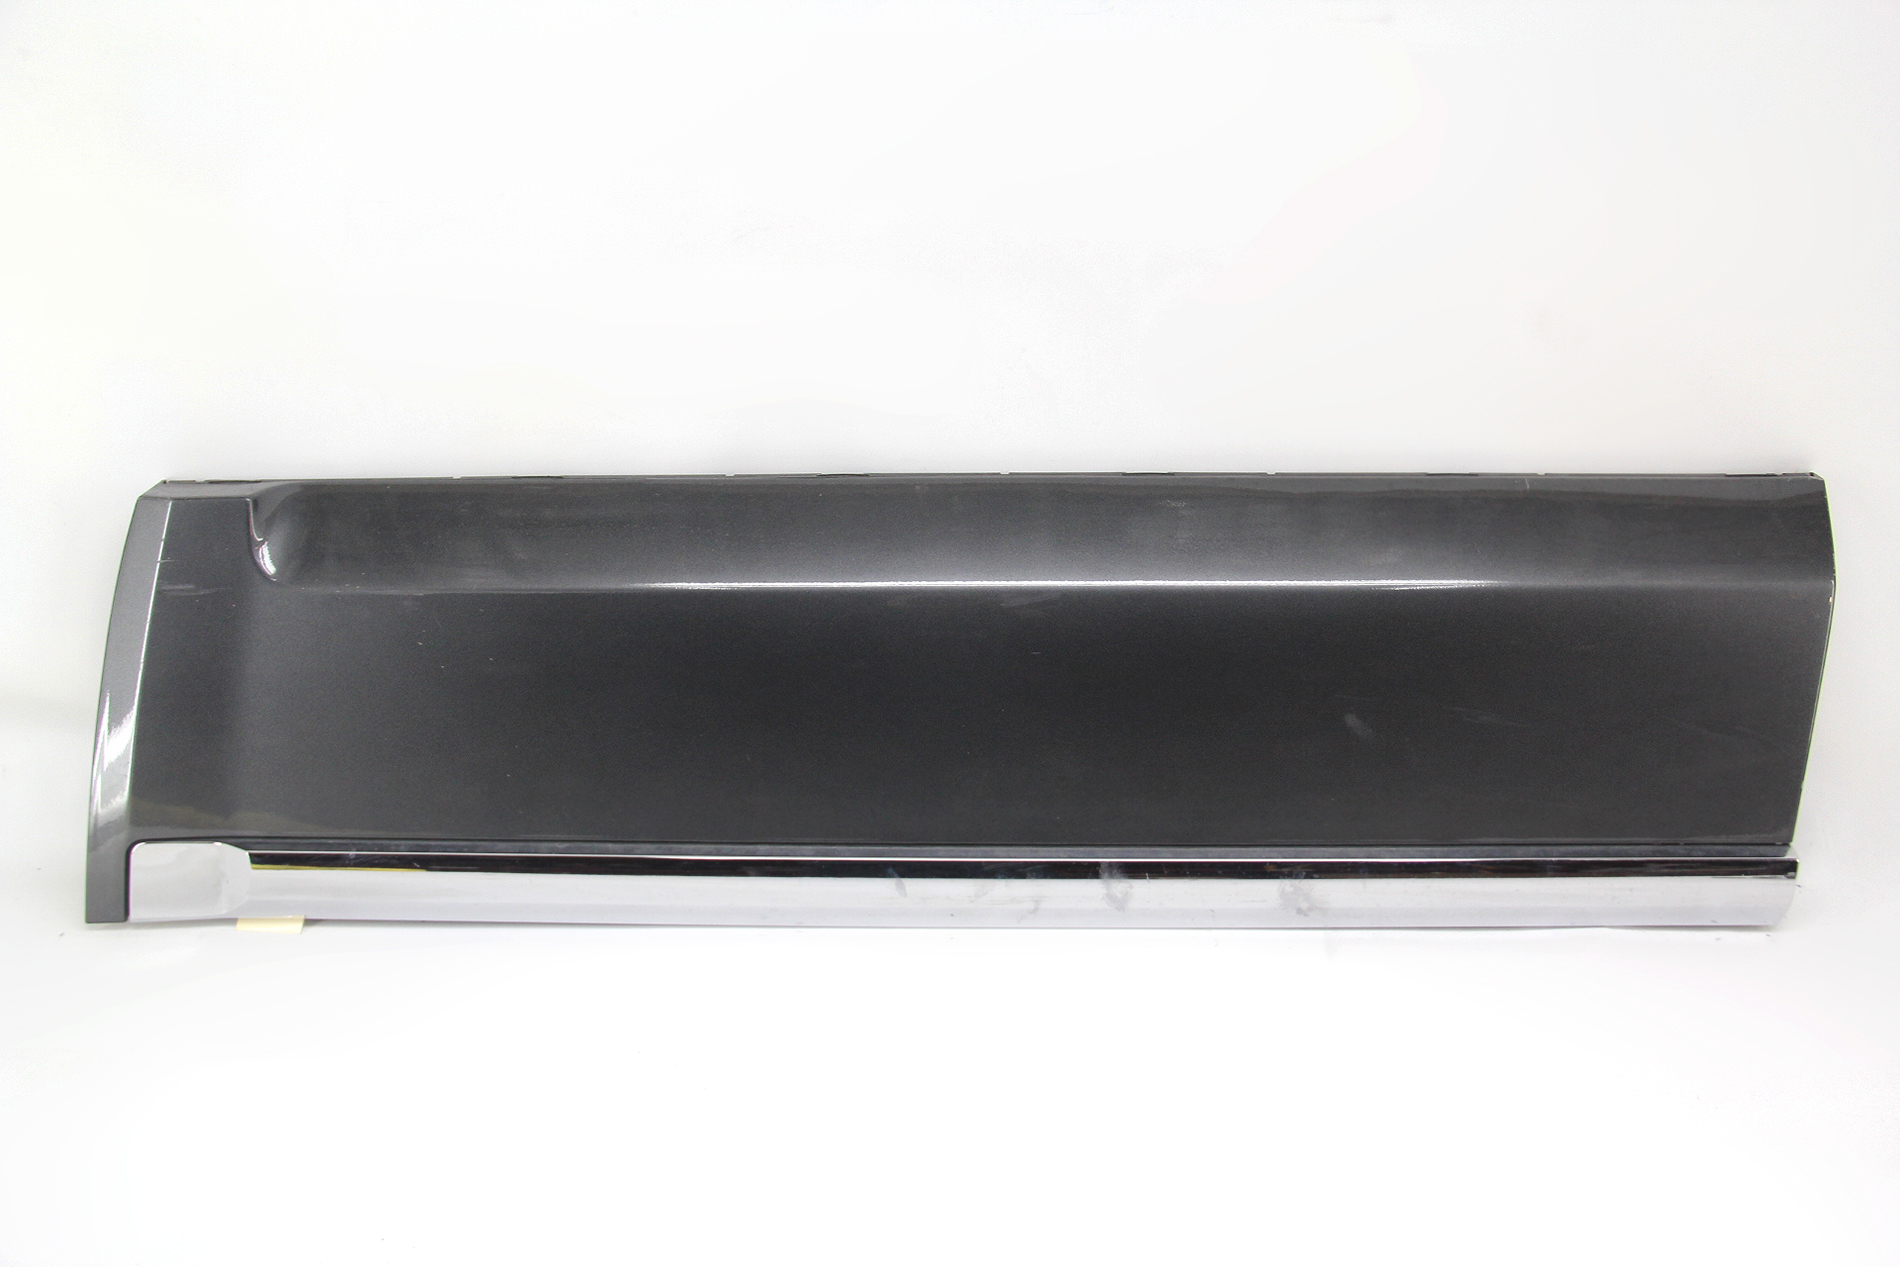 Moulding Trim Infiniti Qx56 Door Molding Moulding Trim Garnish Charcoal Gray Grey Front Right